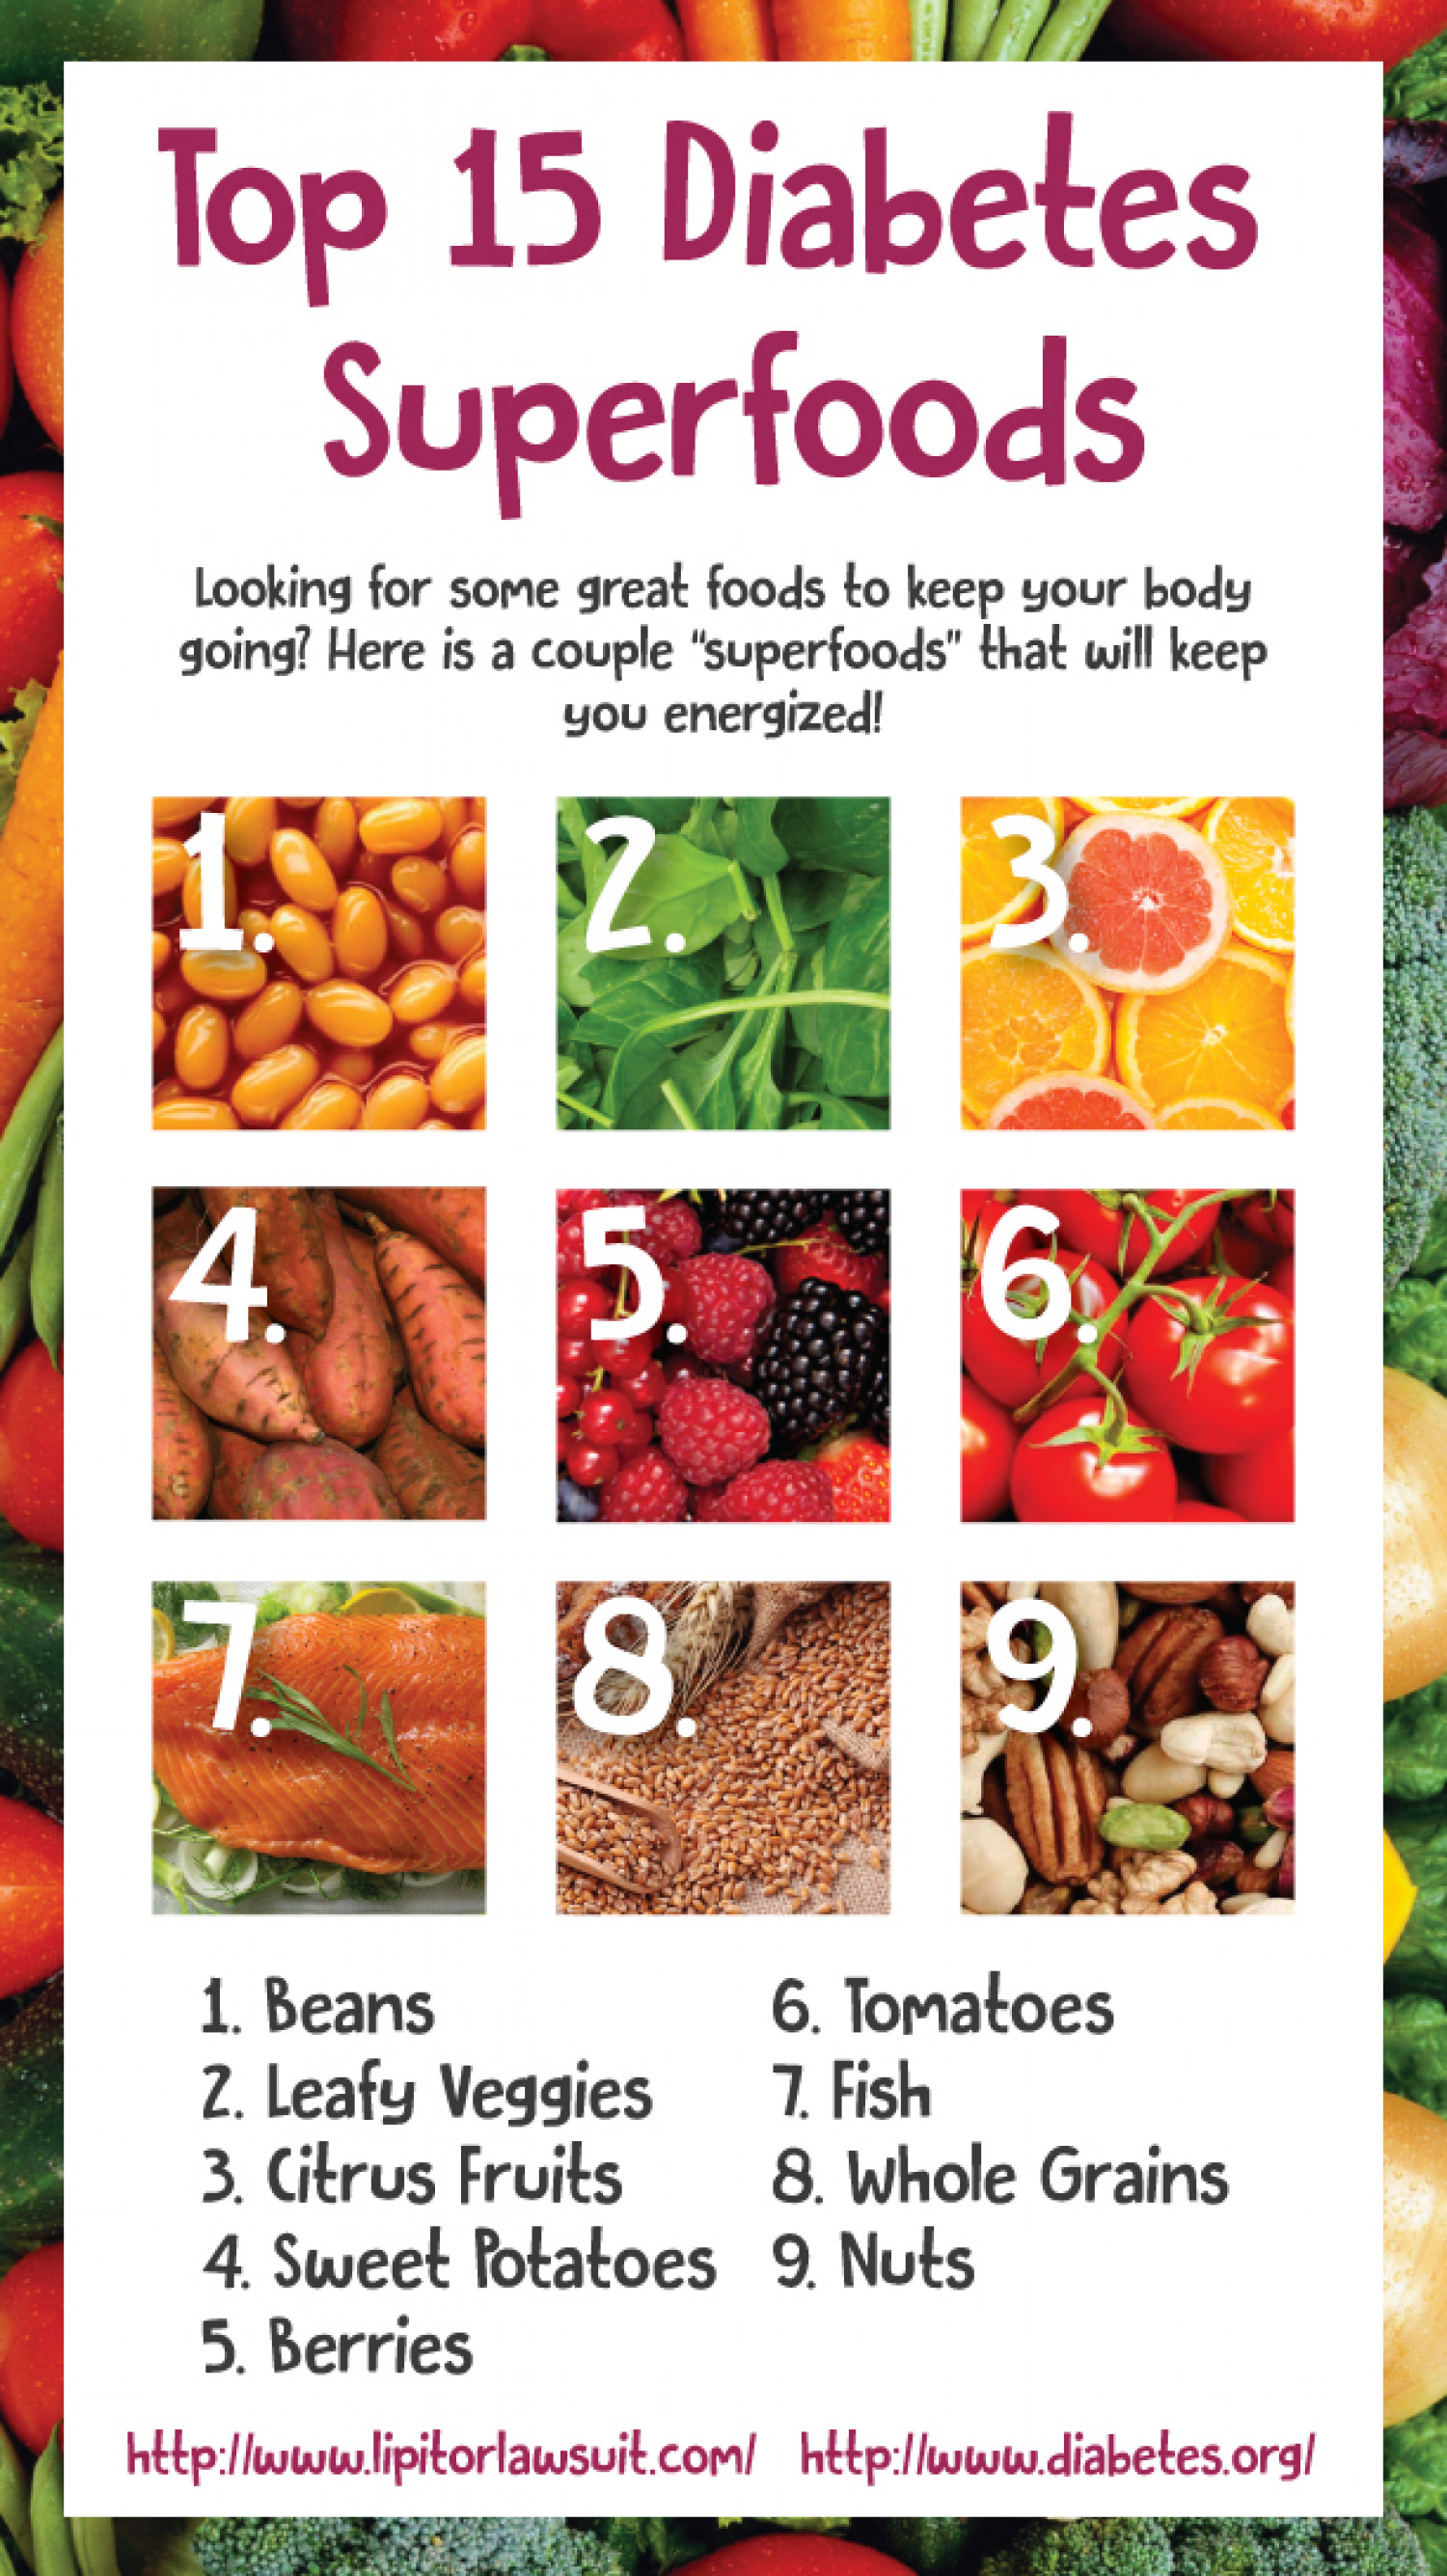 Top 15 Diabetes Superfoods! Infographic